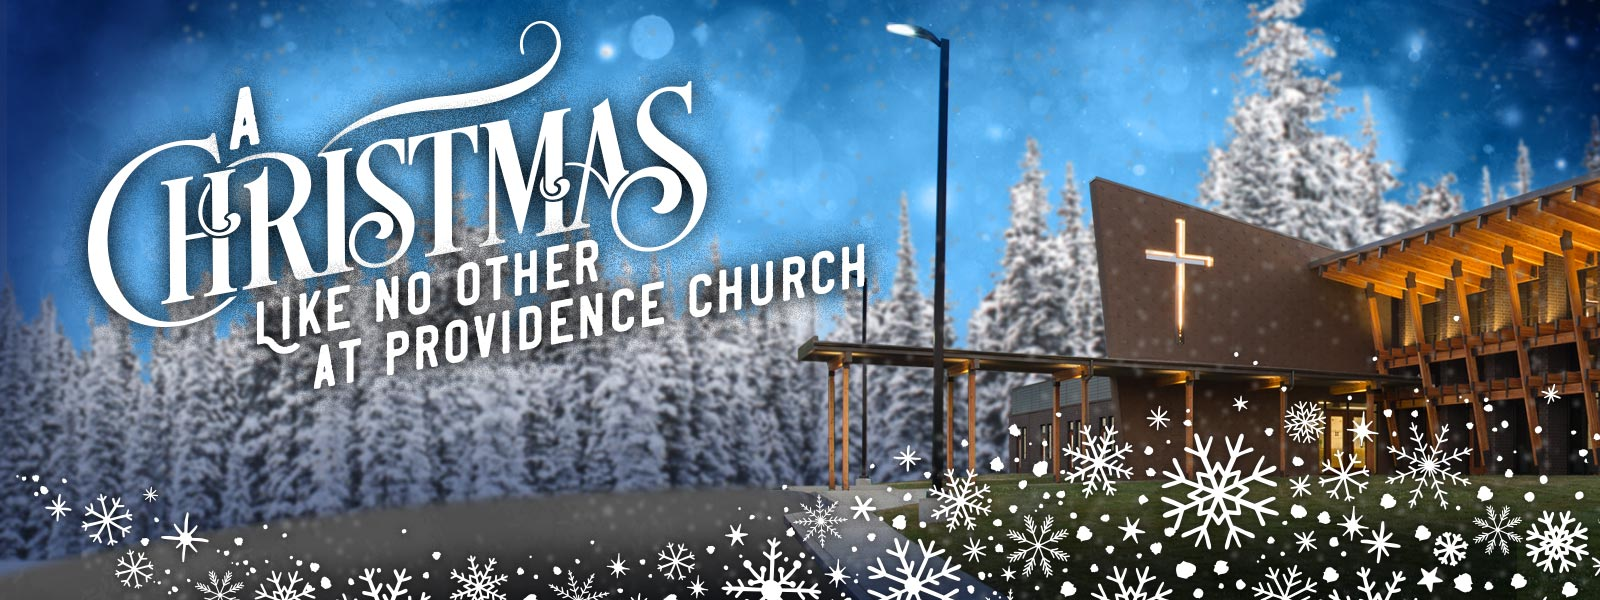 Christmas Services at Providence Church 2020 | Mt. Juliet